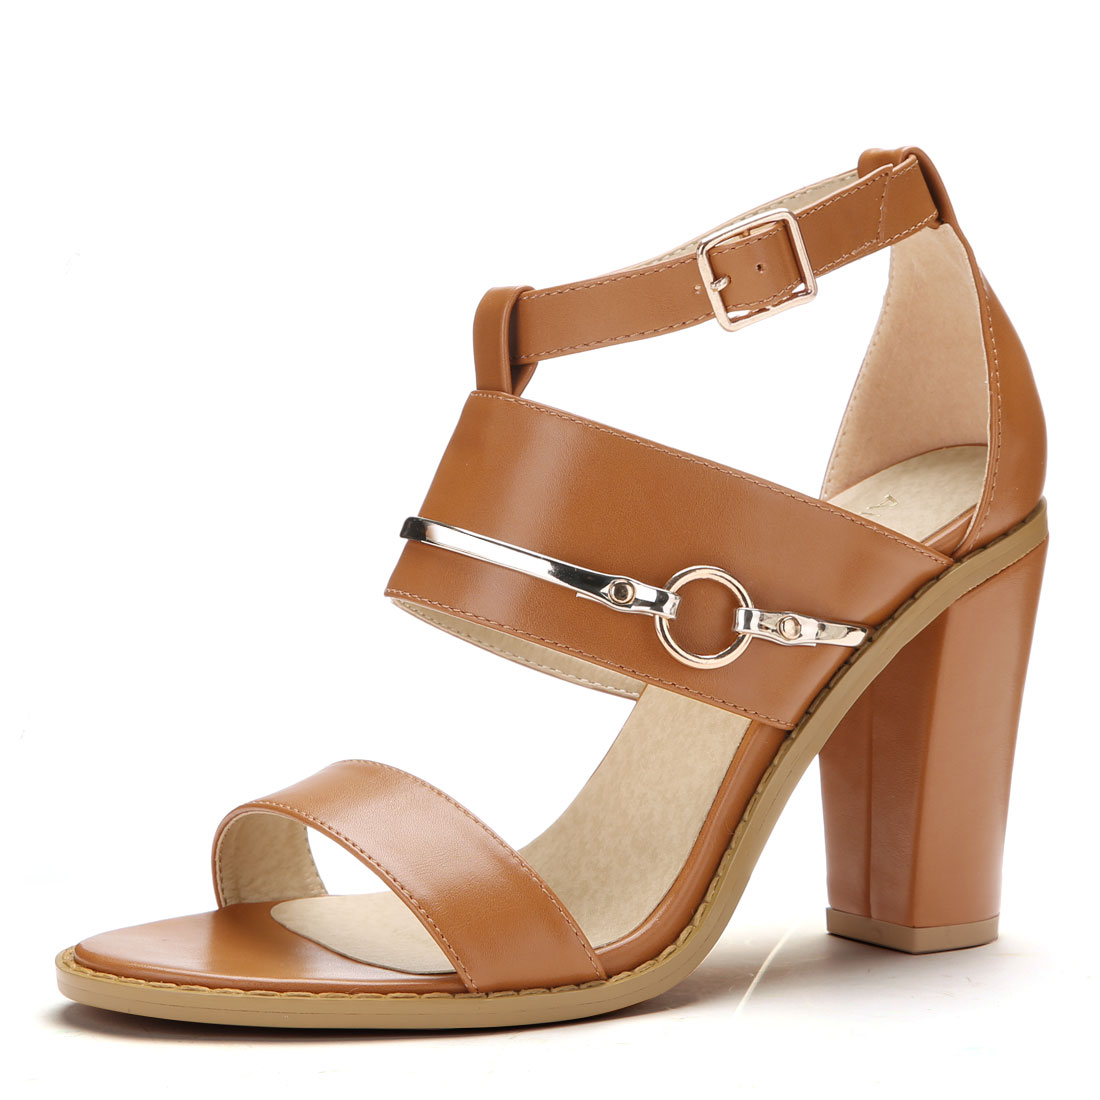 Women Open Toe Chunky High Heel Ankle Strap Sandals Brown US 7.5